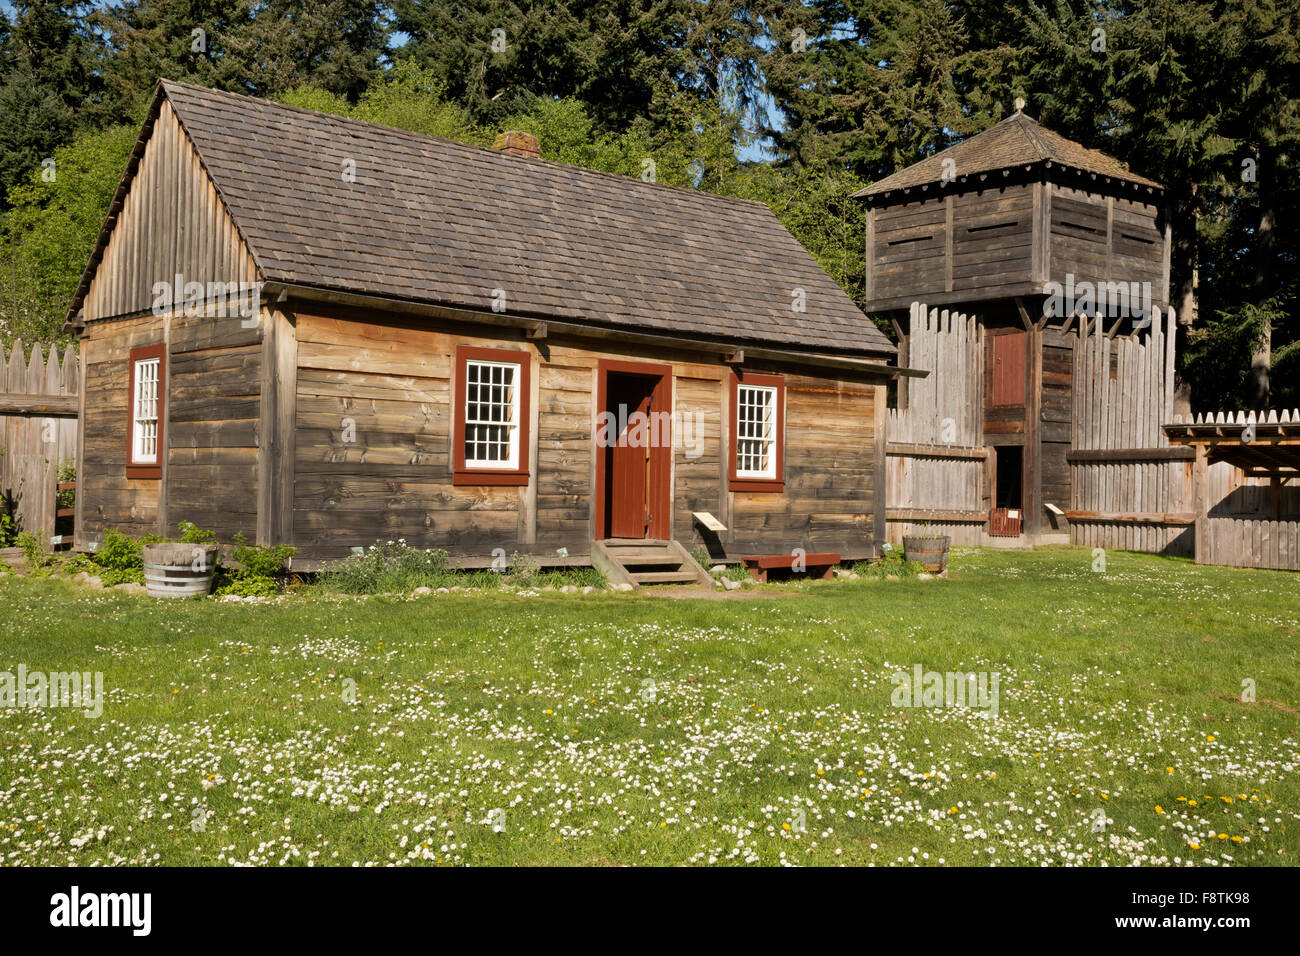 WASHINGTON - Block House at  the Fort Nisqually Historic Site, a living history museum in Tacoma's Point Defiance - Stock Image